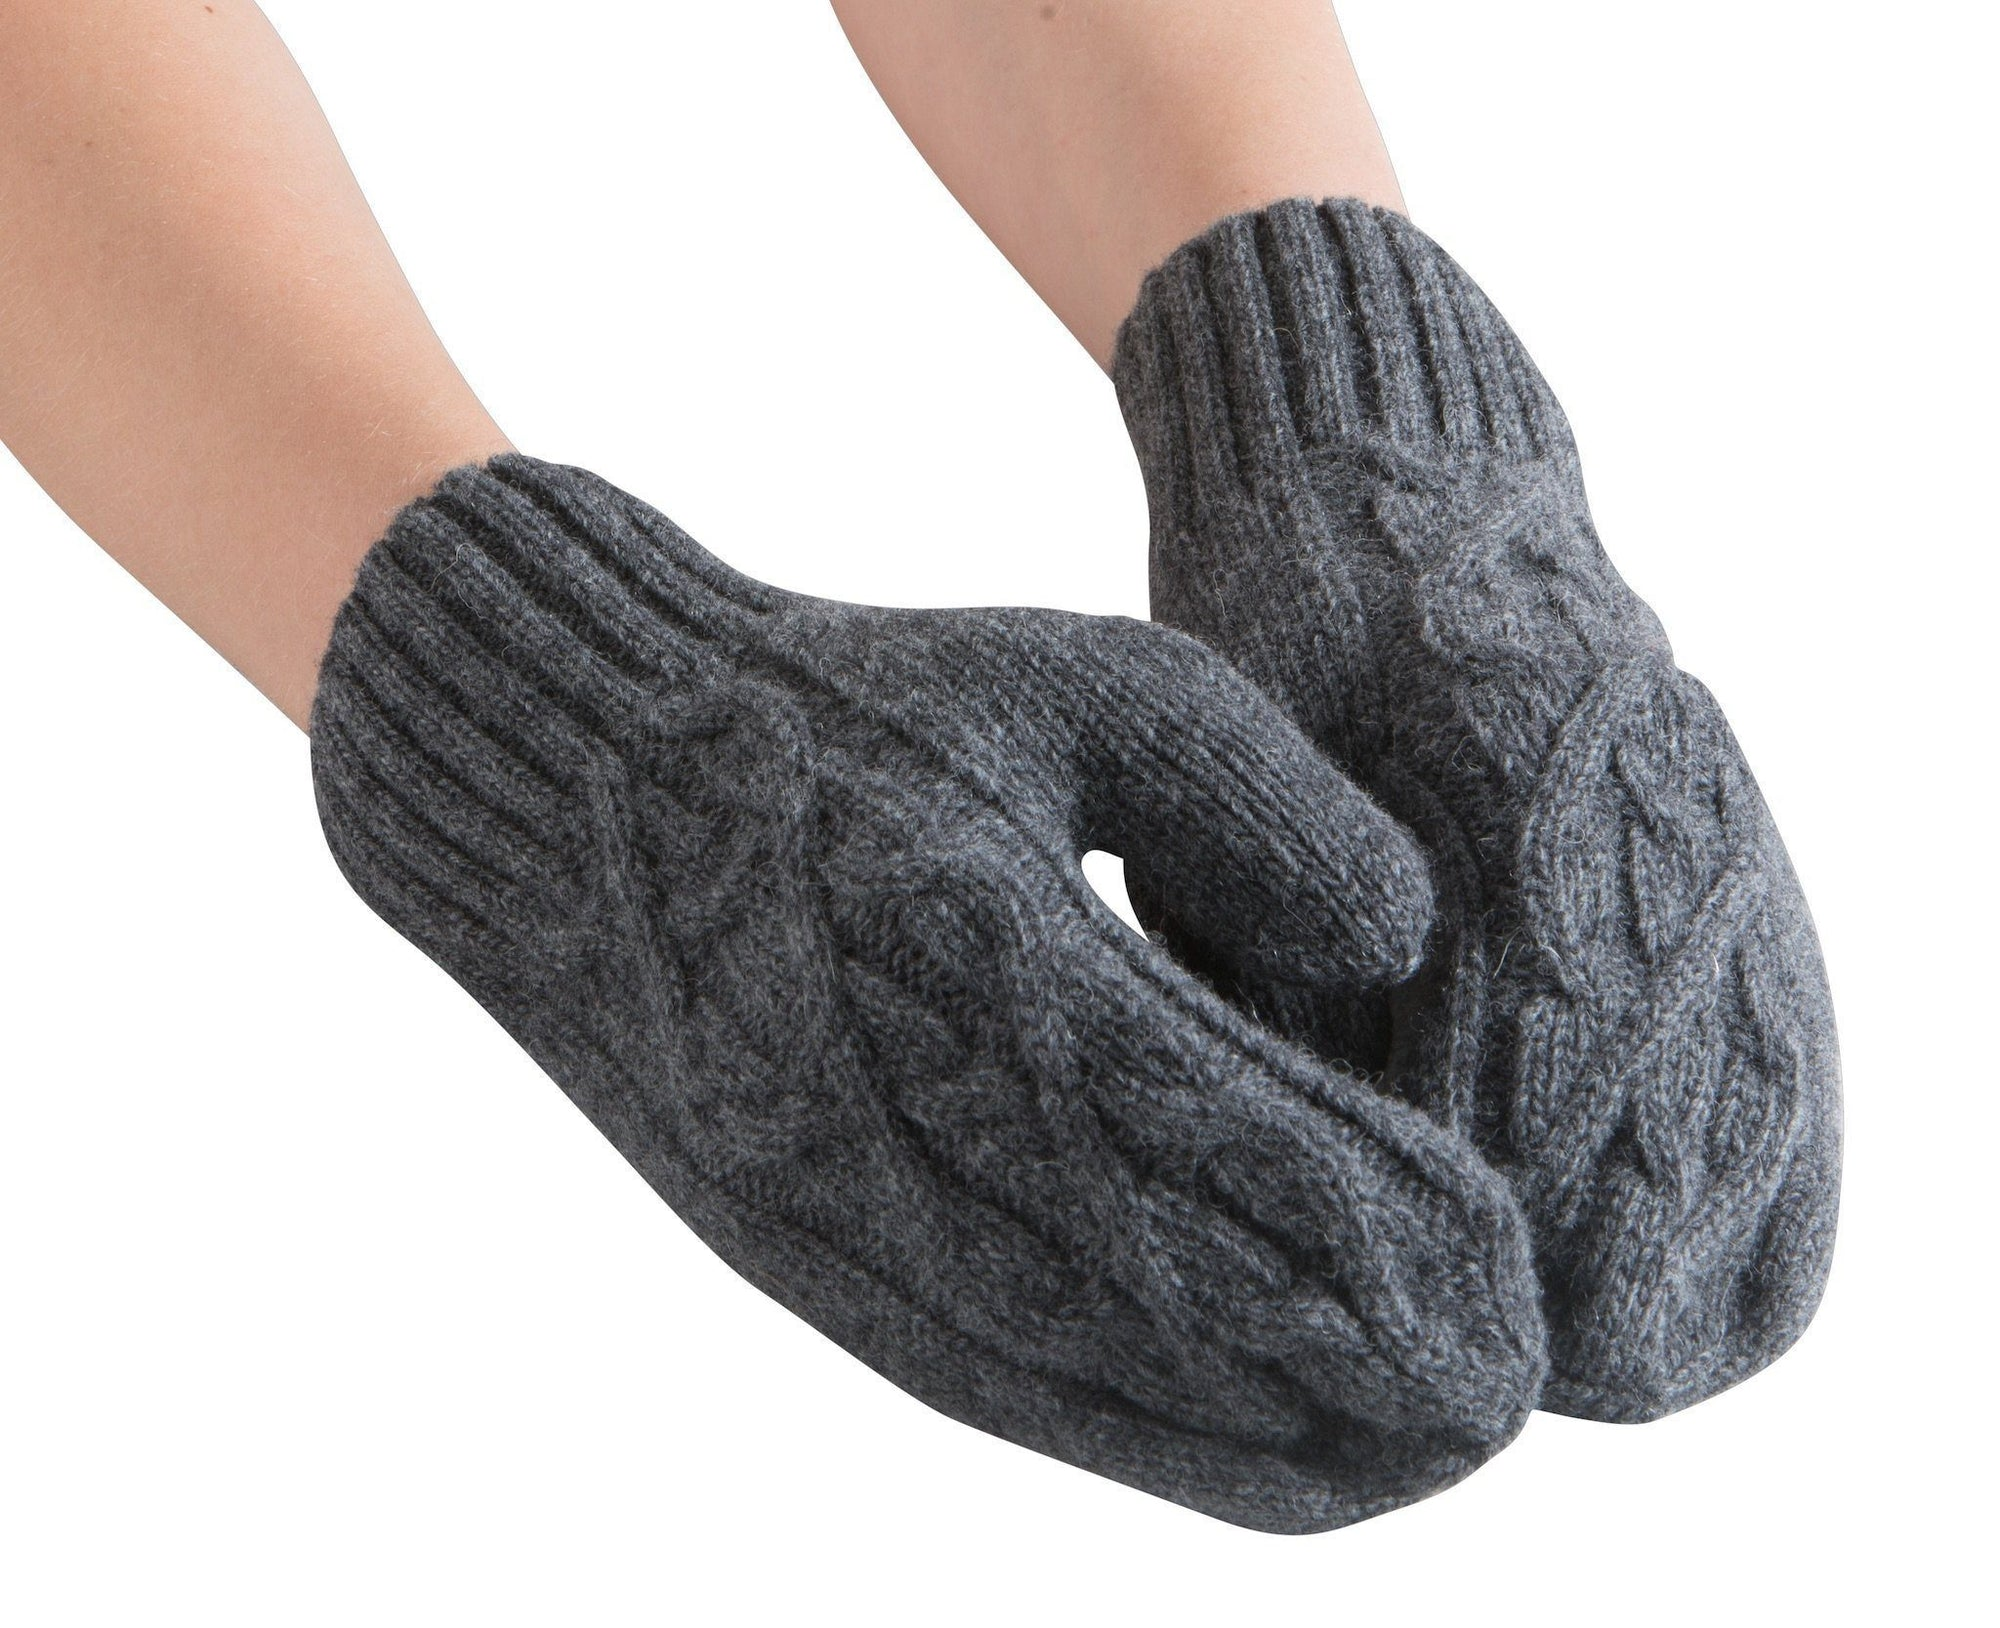 North Outdoor - Havu Mittens - 100% Merino Wool - Made in Finland - Weekendbee - sustainable sportswear